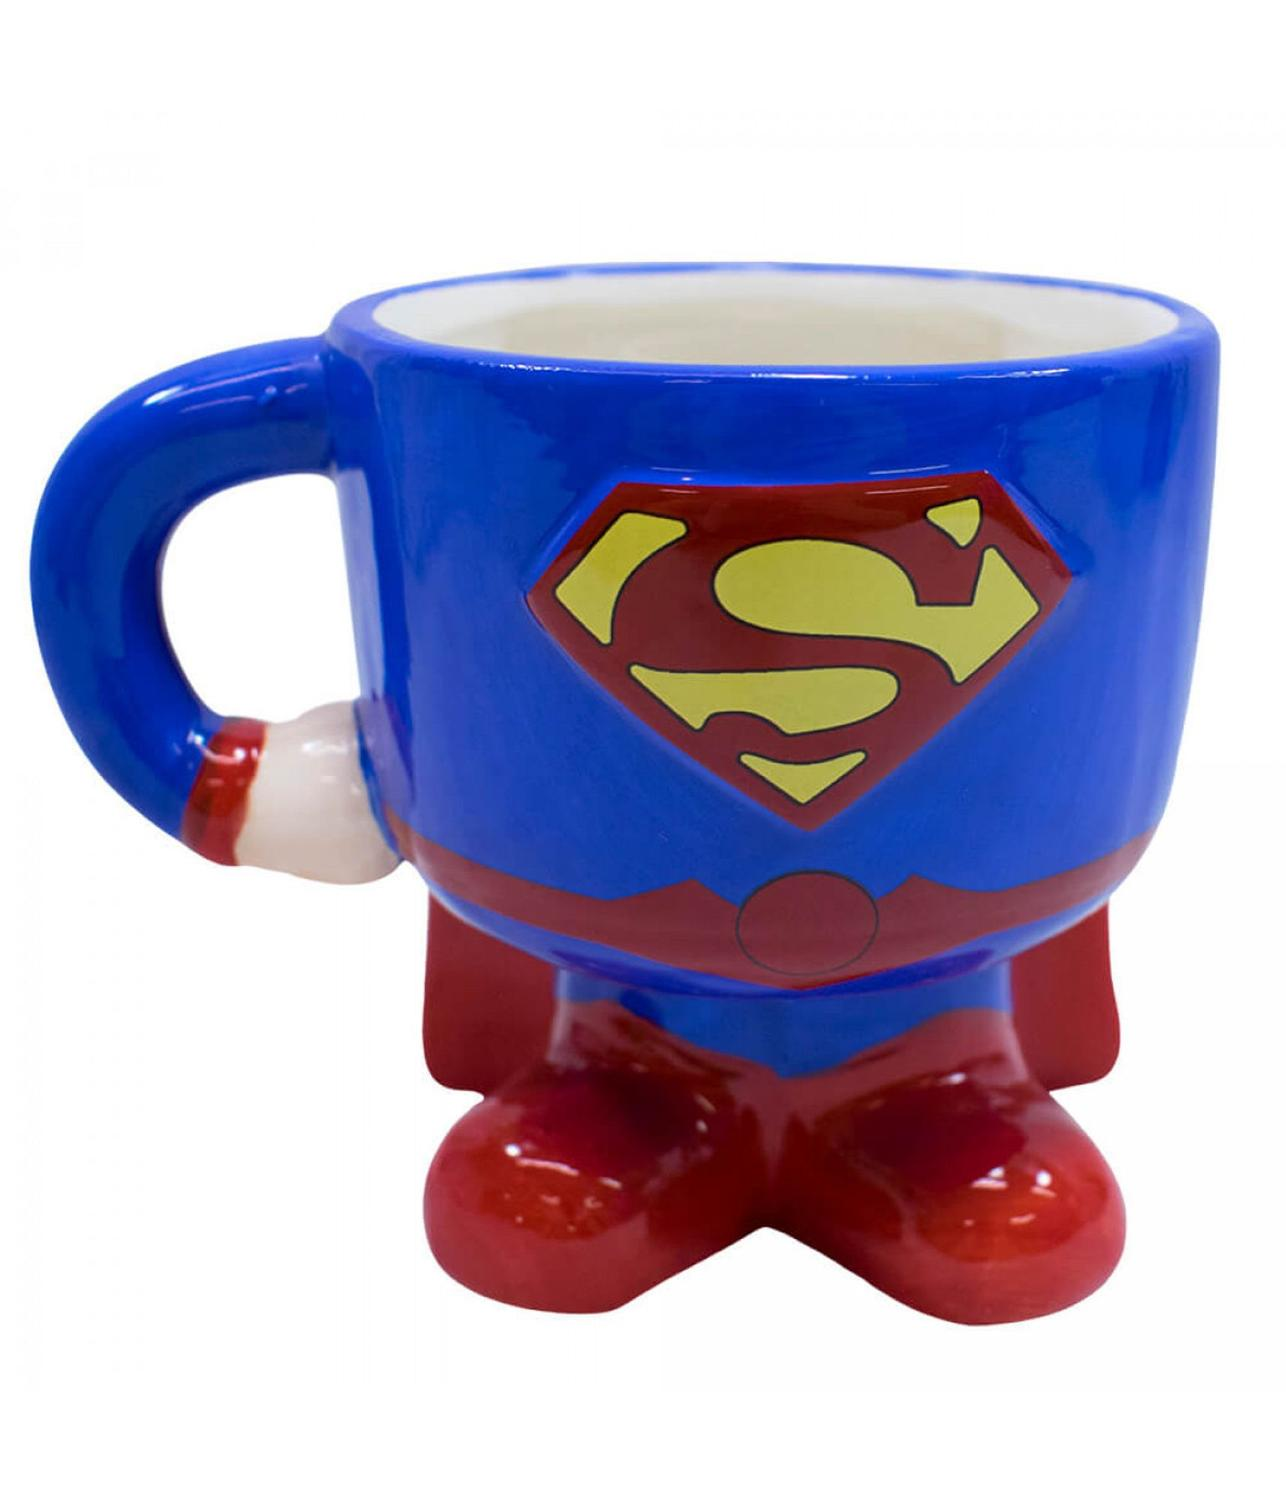 Caneca enfeite de Porcelana Superman DC SUPER FRIENDS